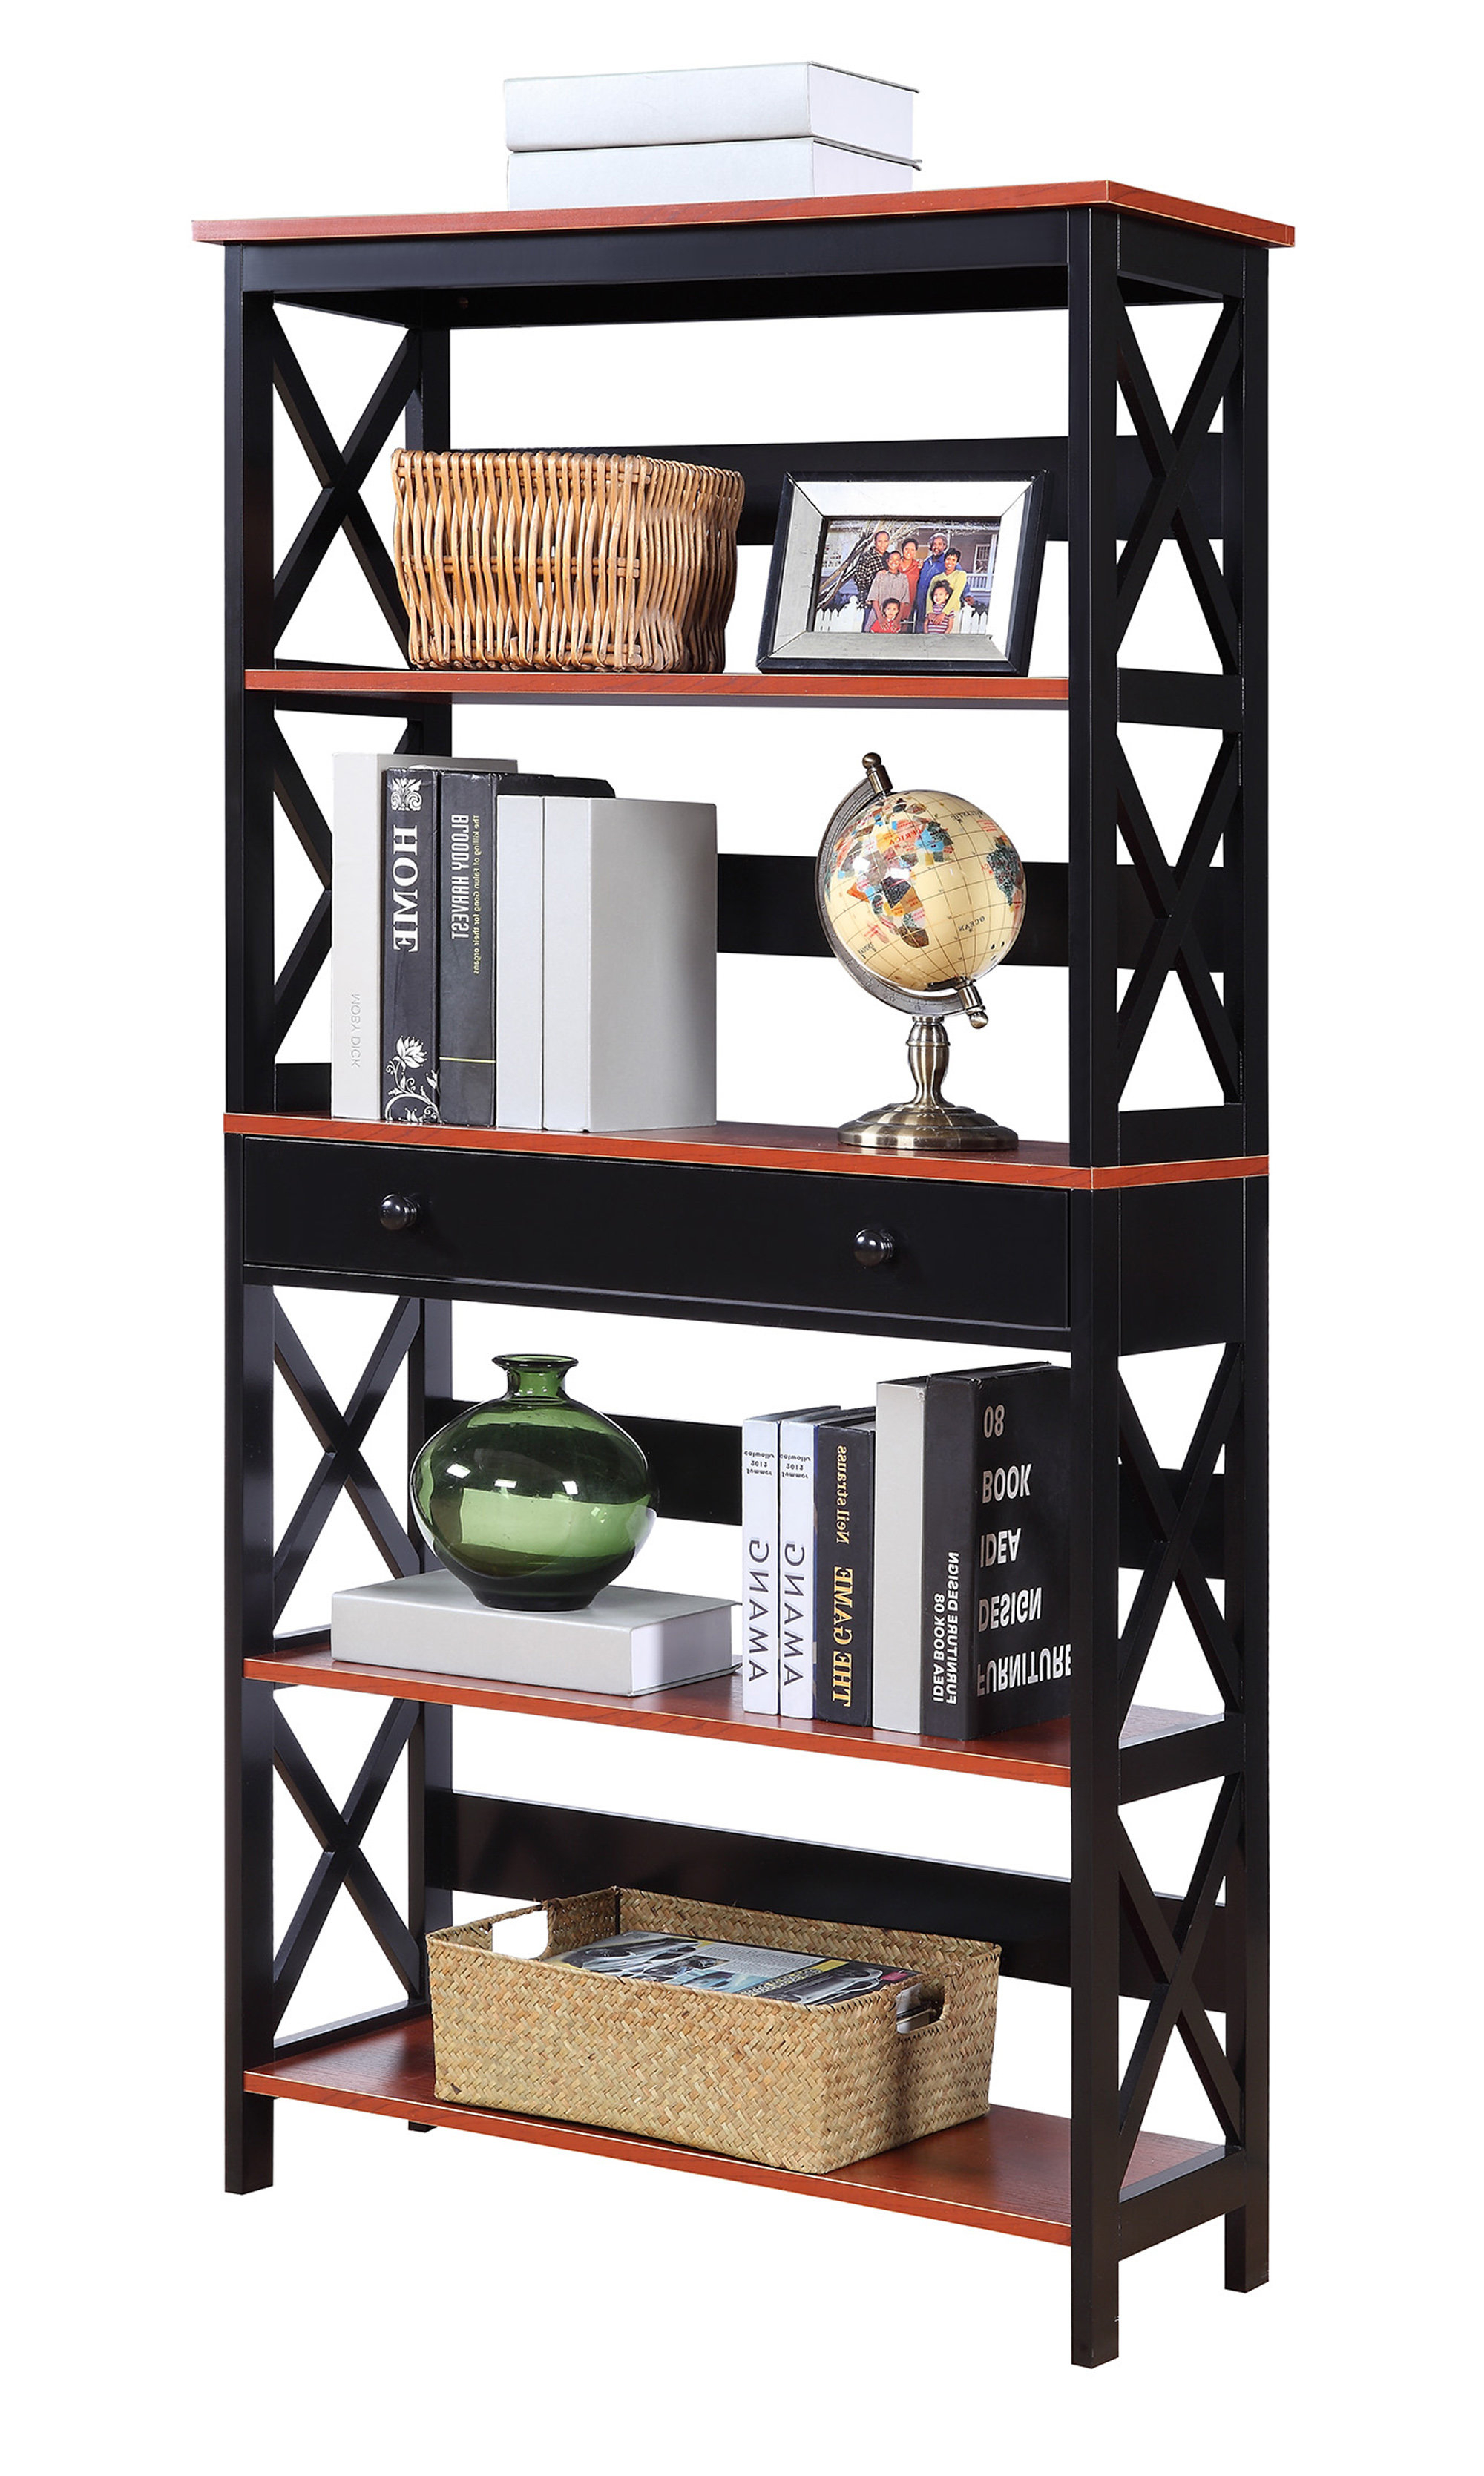 Beachcrest Home Gracelynn 5 Tier Etagere Bookcase Pertaining To Fashionable Gracelynn 5 Tier Etagere Bookcases (View 10 of 20)